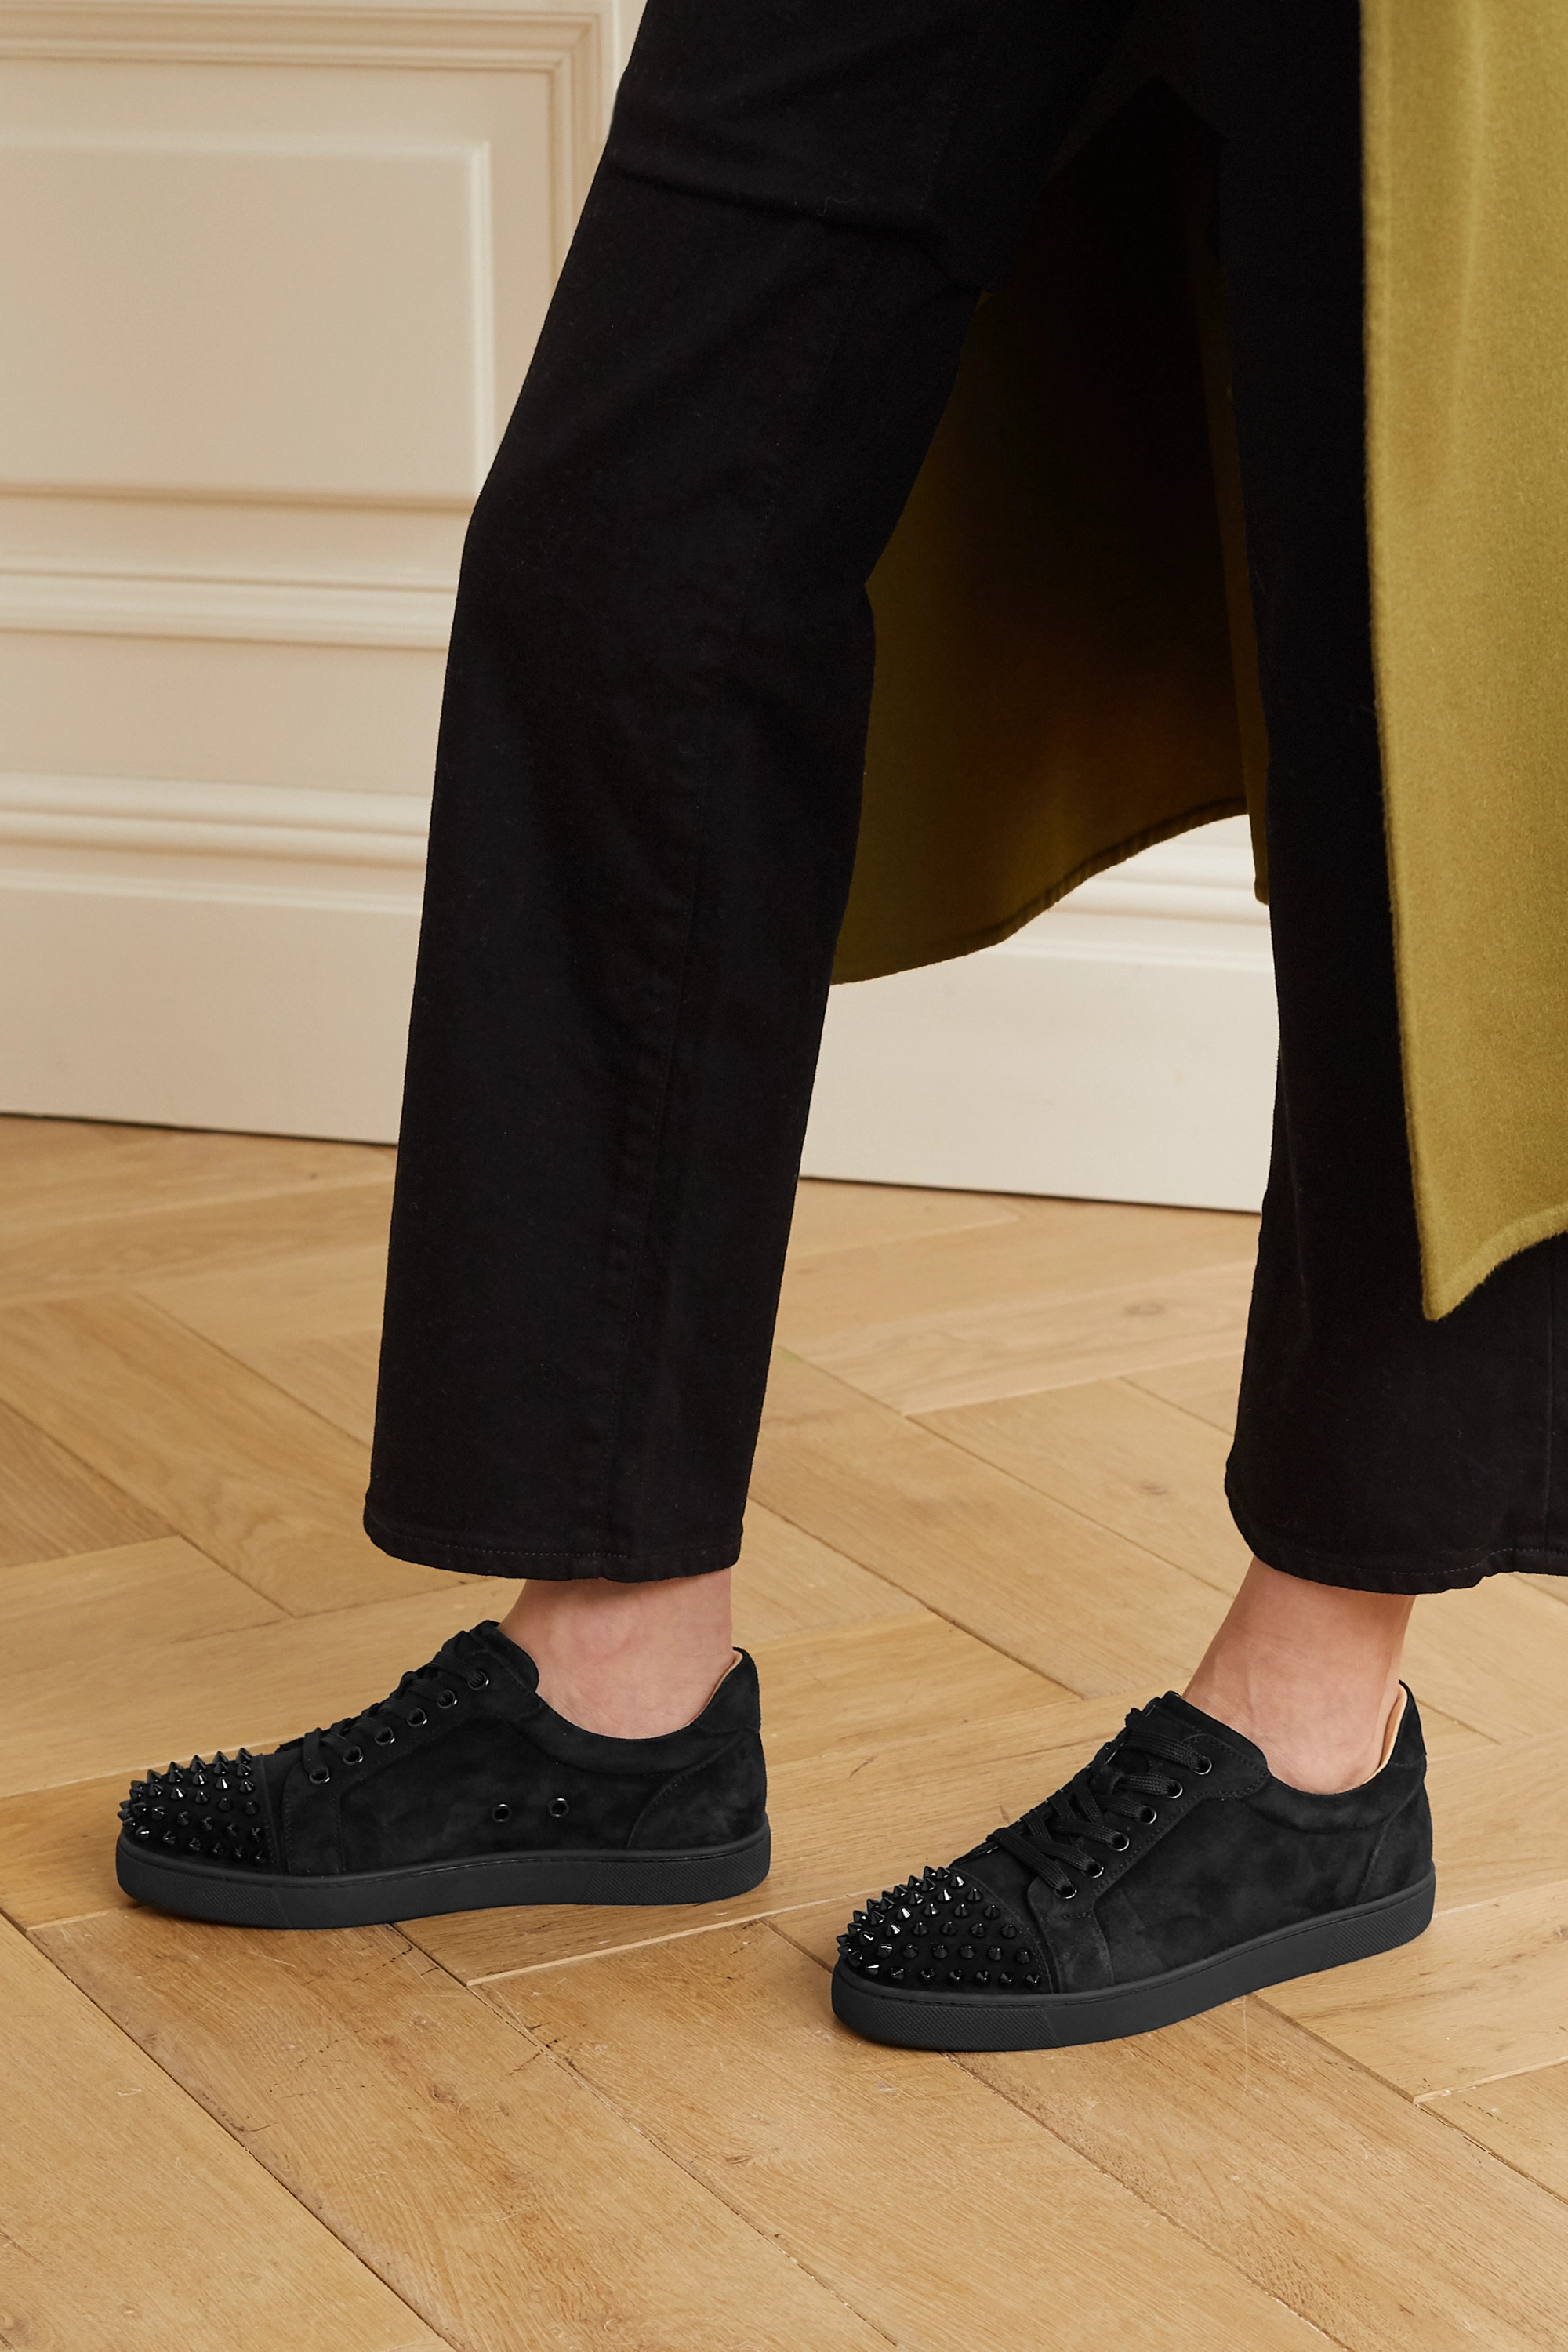 Black Vieira spiked suede sneakers